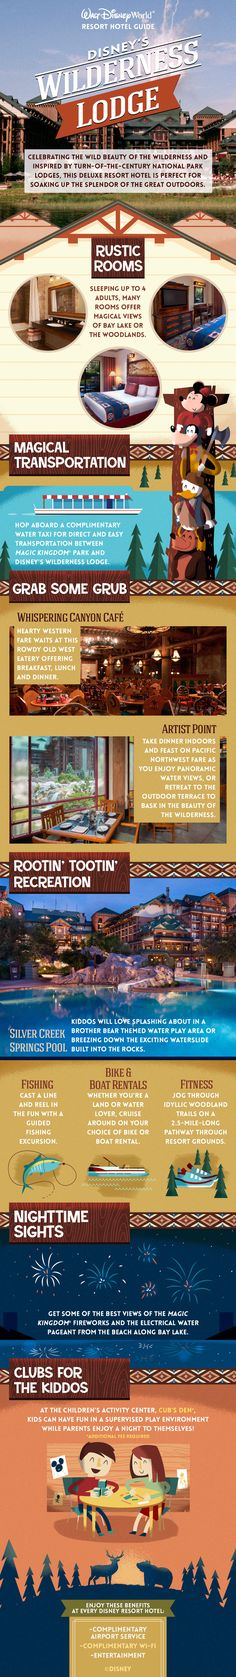 Escape to the rustic majesty of America's Great Northwest. Inspired by turn-of-the-century National Park lodges, Disney's Wilderness Lodge celebrates American craftsmanship and honors the beauty of the untamed wilderness. Enjoy beautiful rooms, resort transportation, delicious dining and restaurant options, and recreation for the entire family on your Walt Disney World vacation!